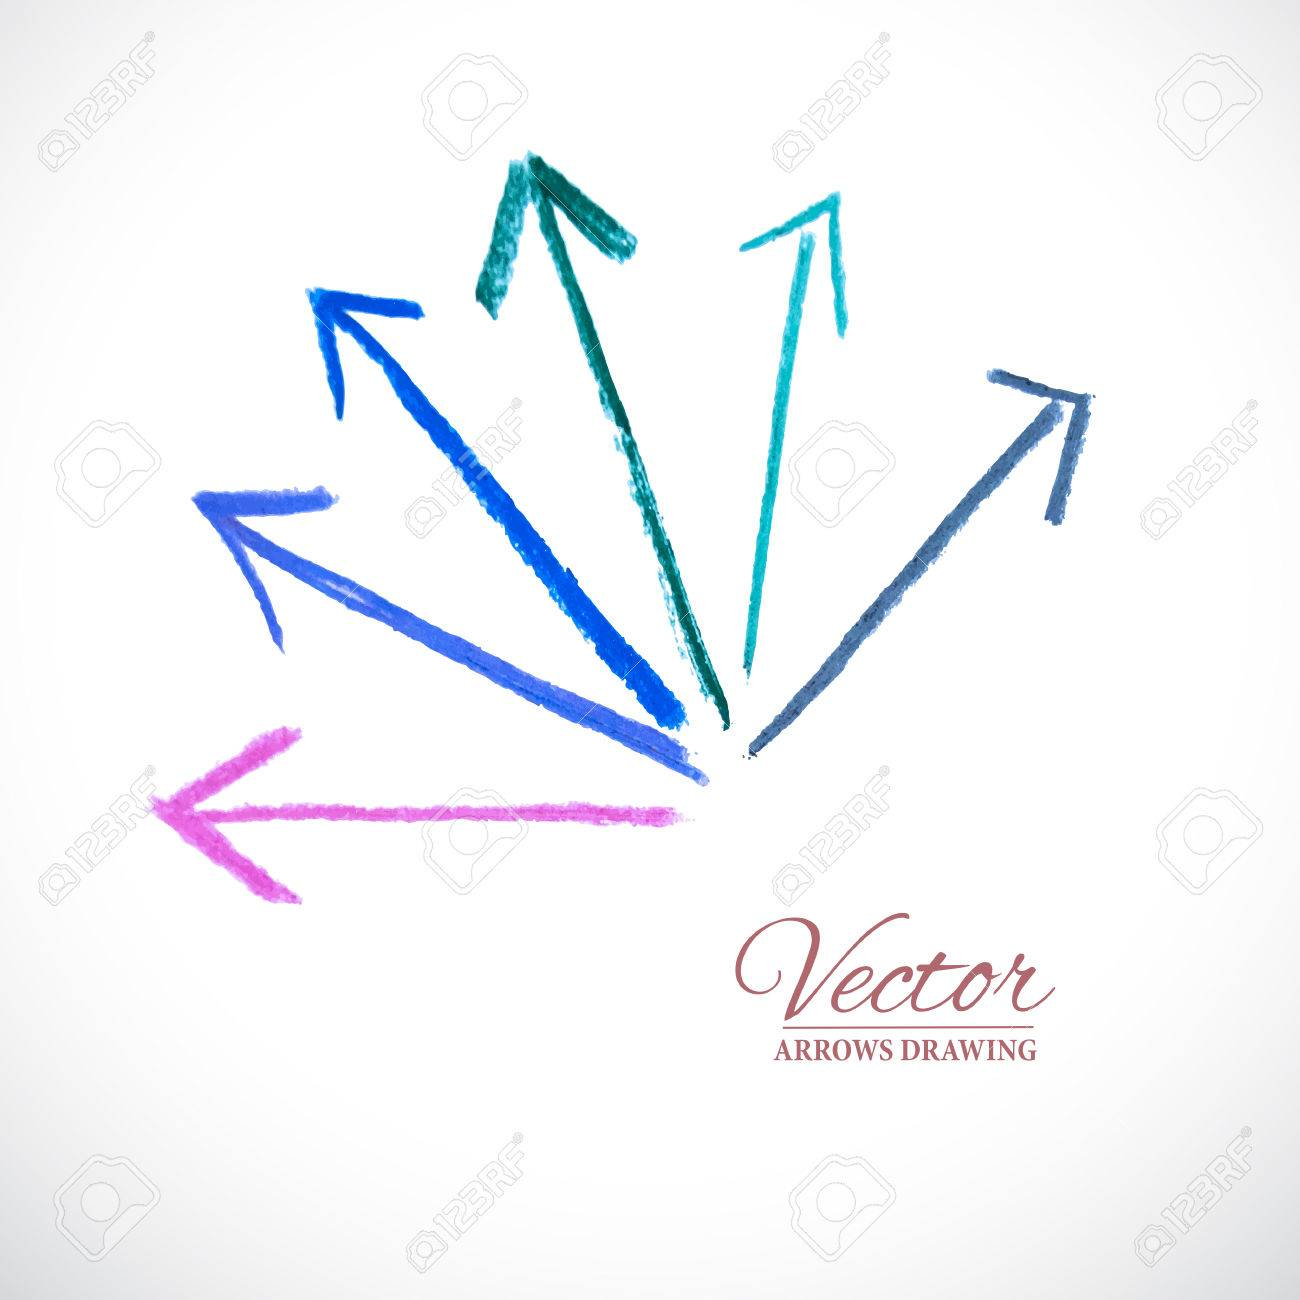 vector colorful arrows vector design elements artistic arrow